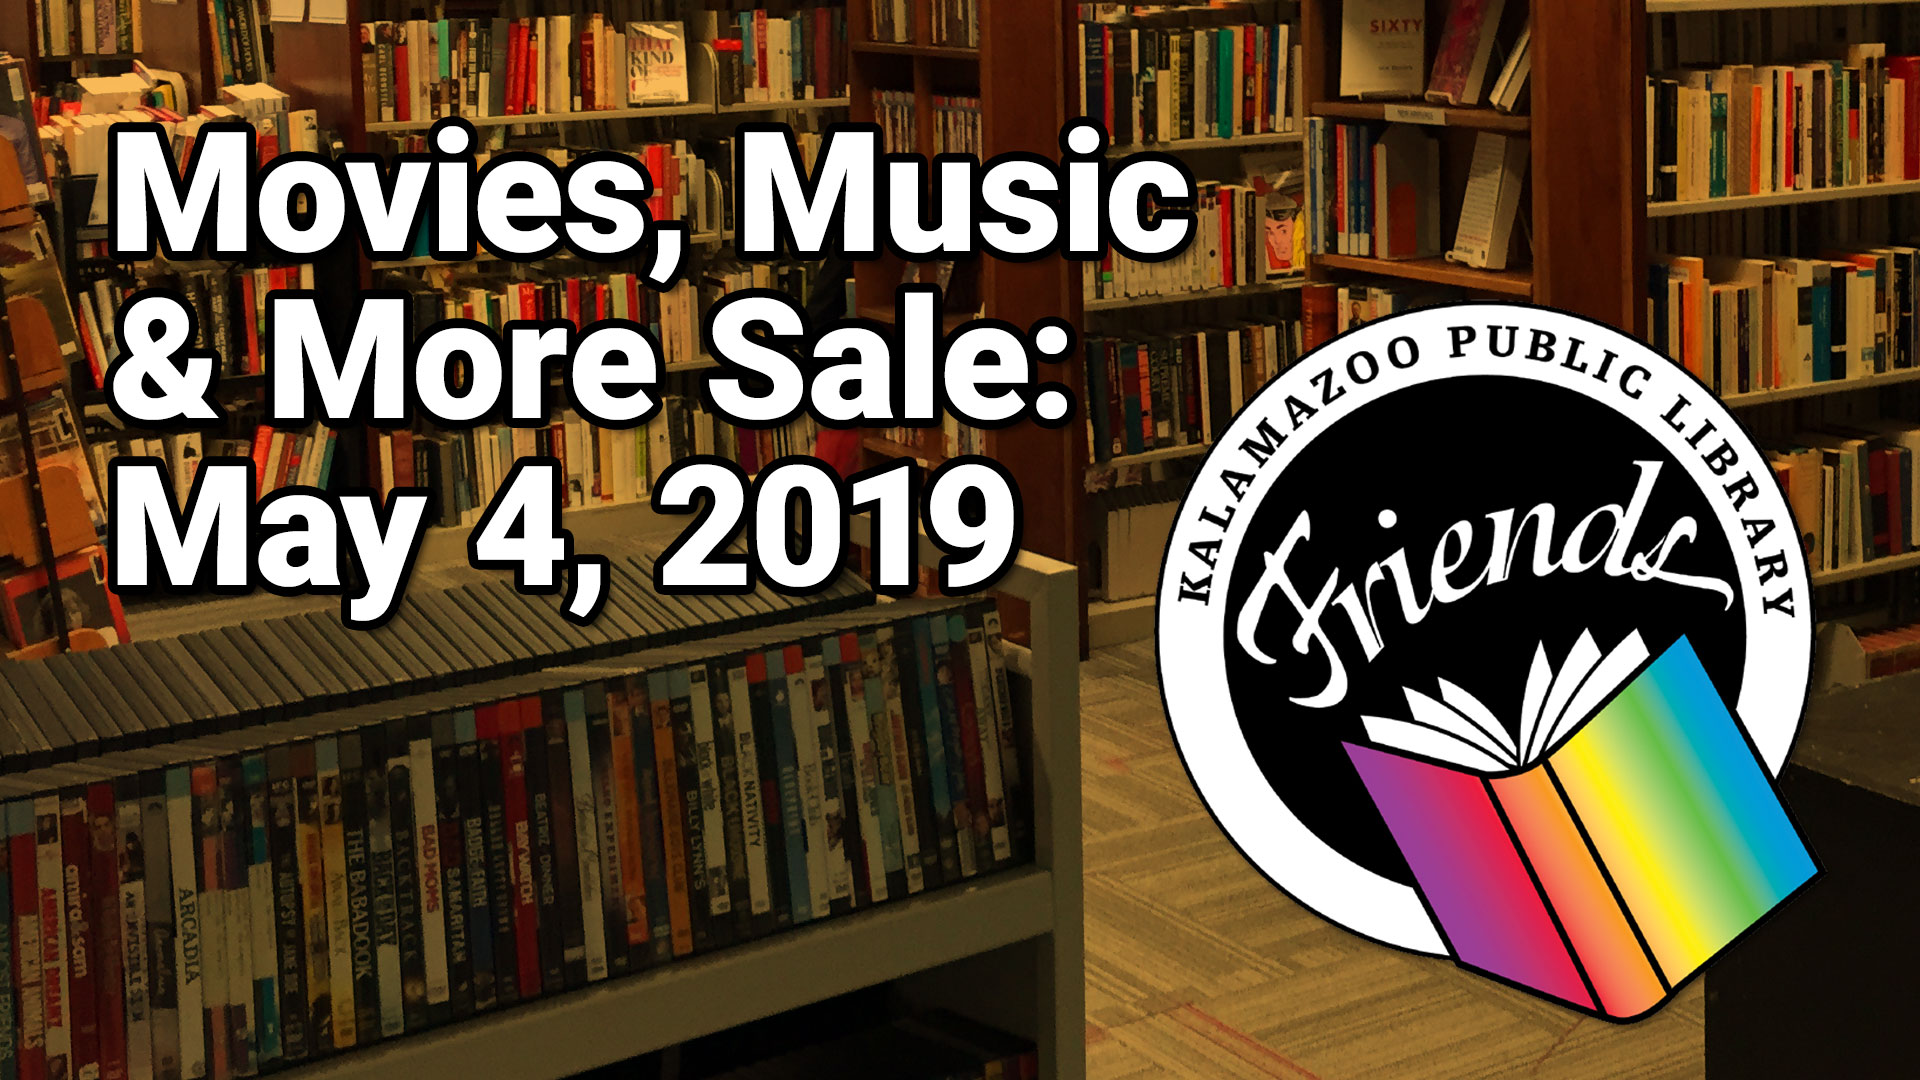 Friends Movies, Music and More Sale — Kalamazoo Public Library